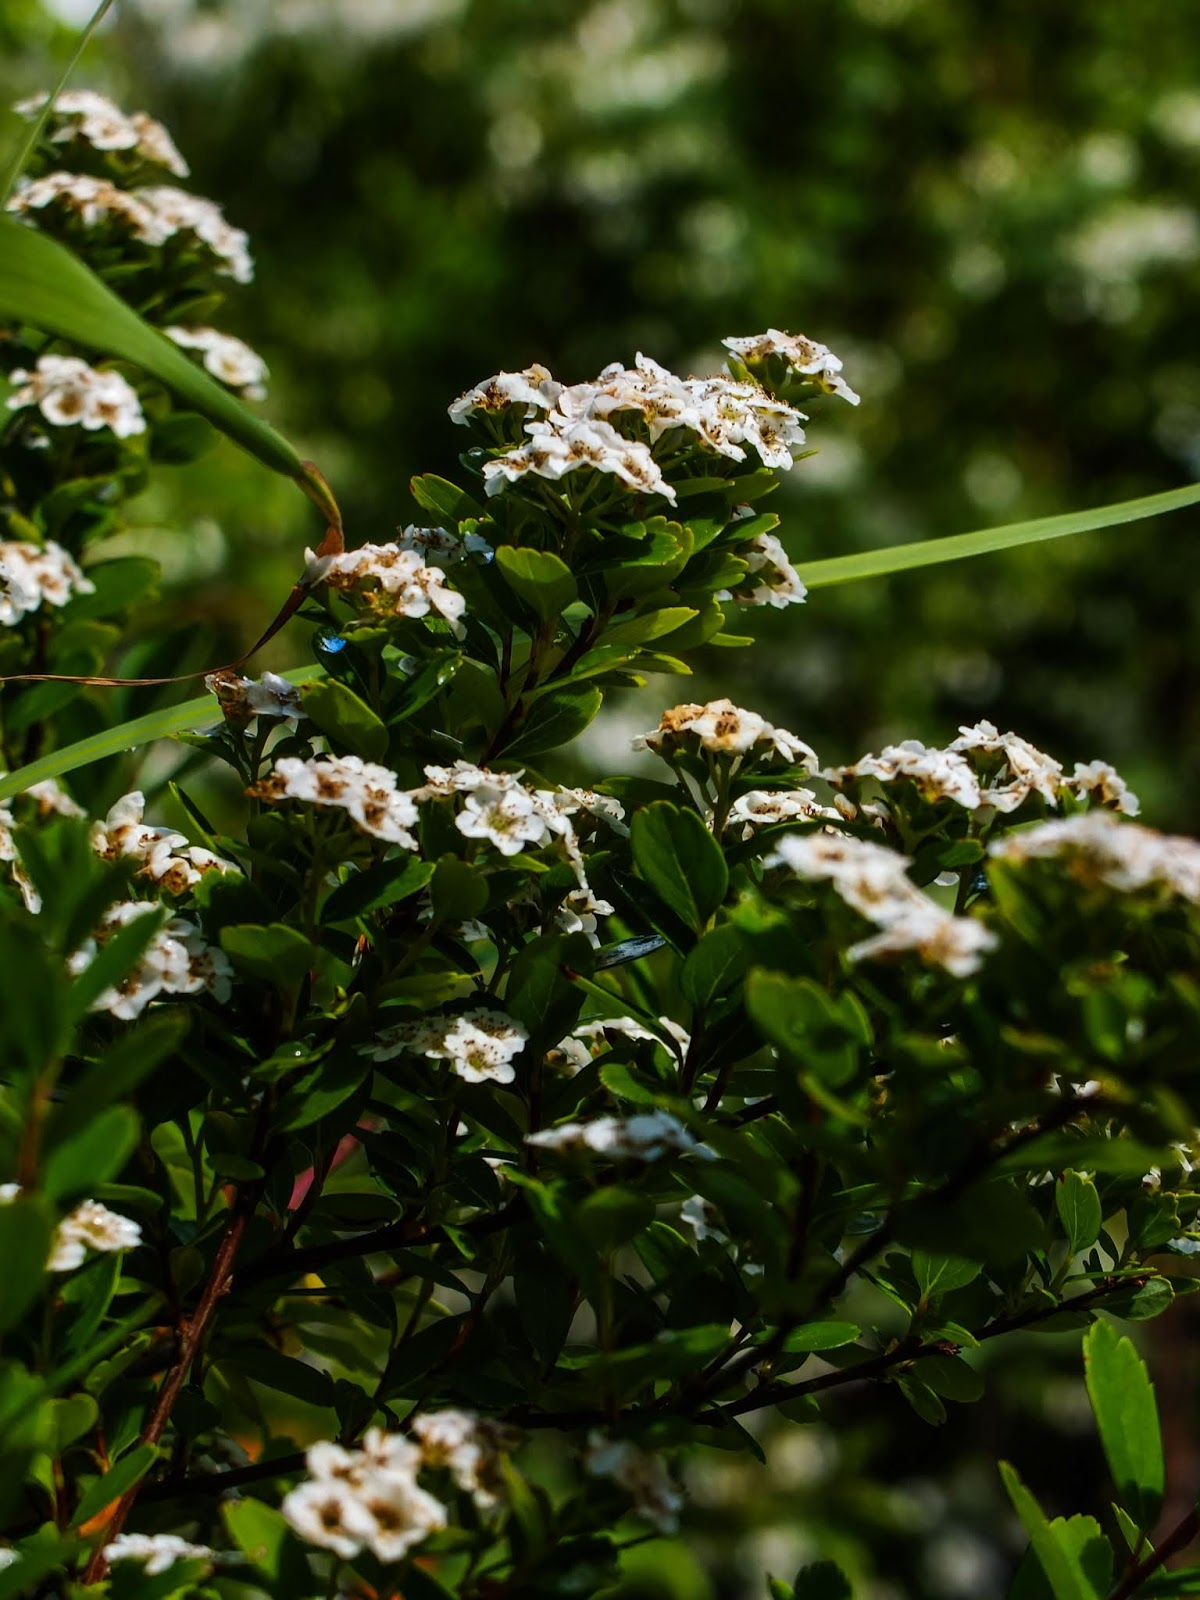 Clusters of little white flowers on a bush in the sun light.